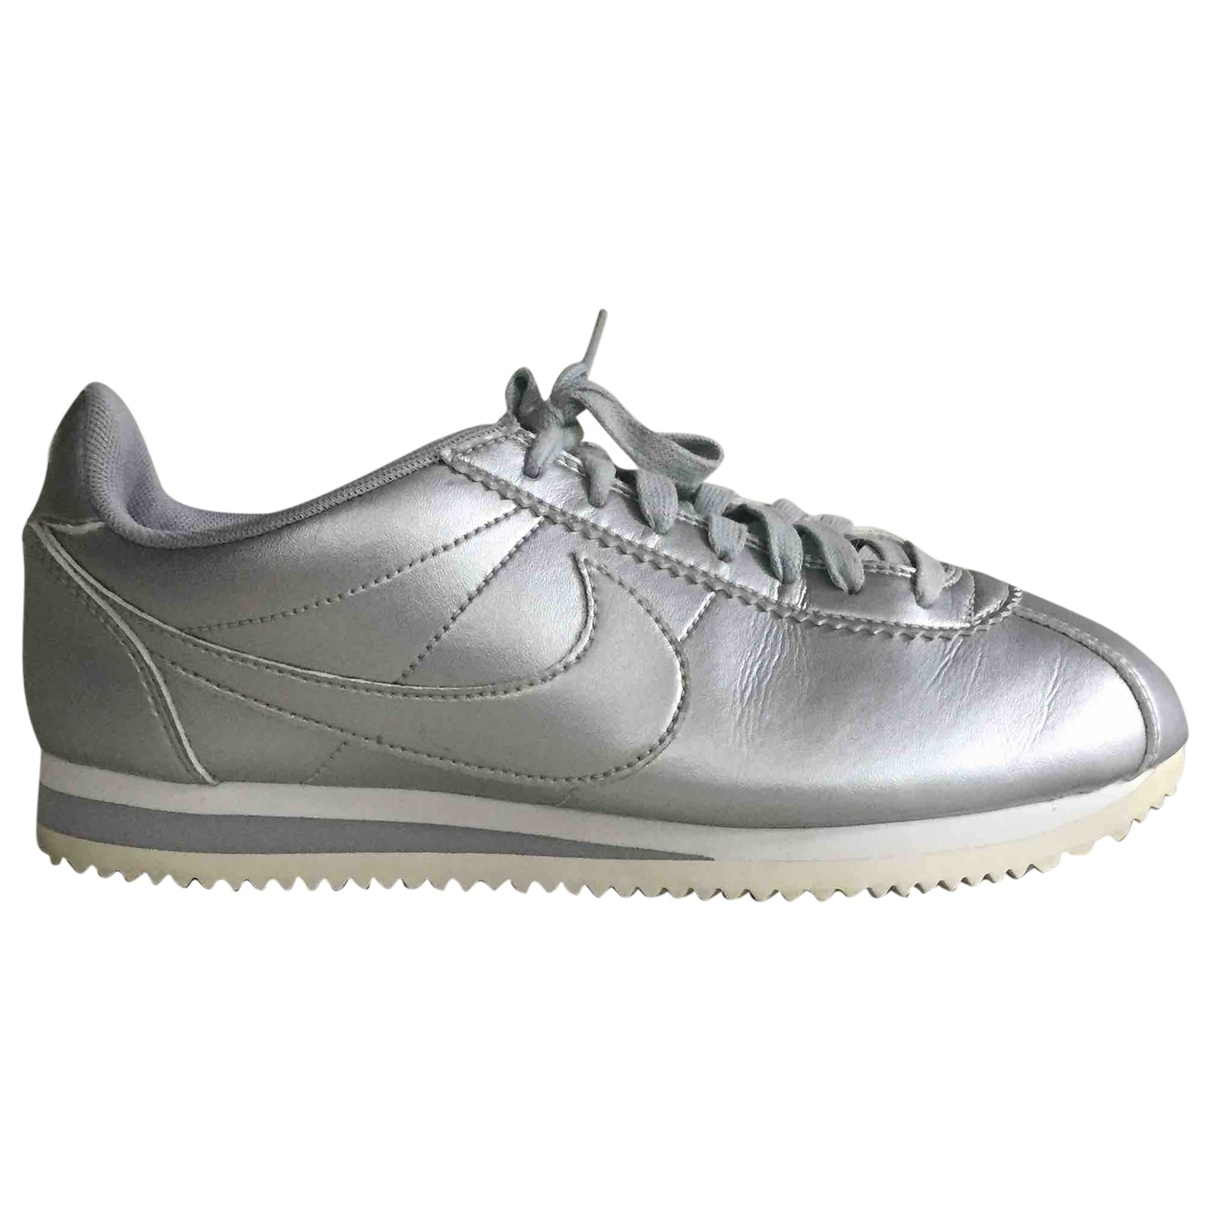 Nike Cortez Silver Leather Trainers for Women 38 EU